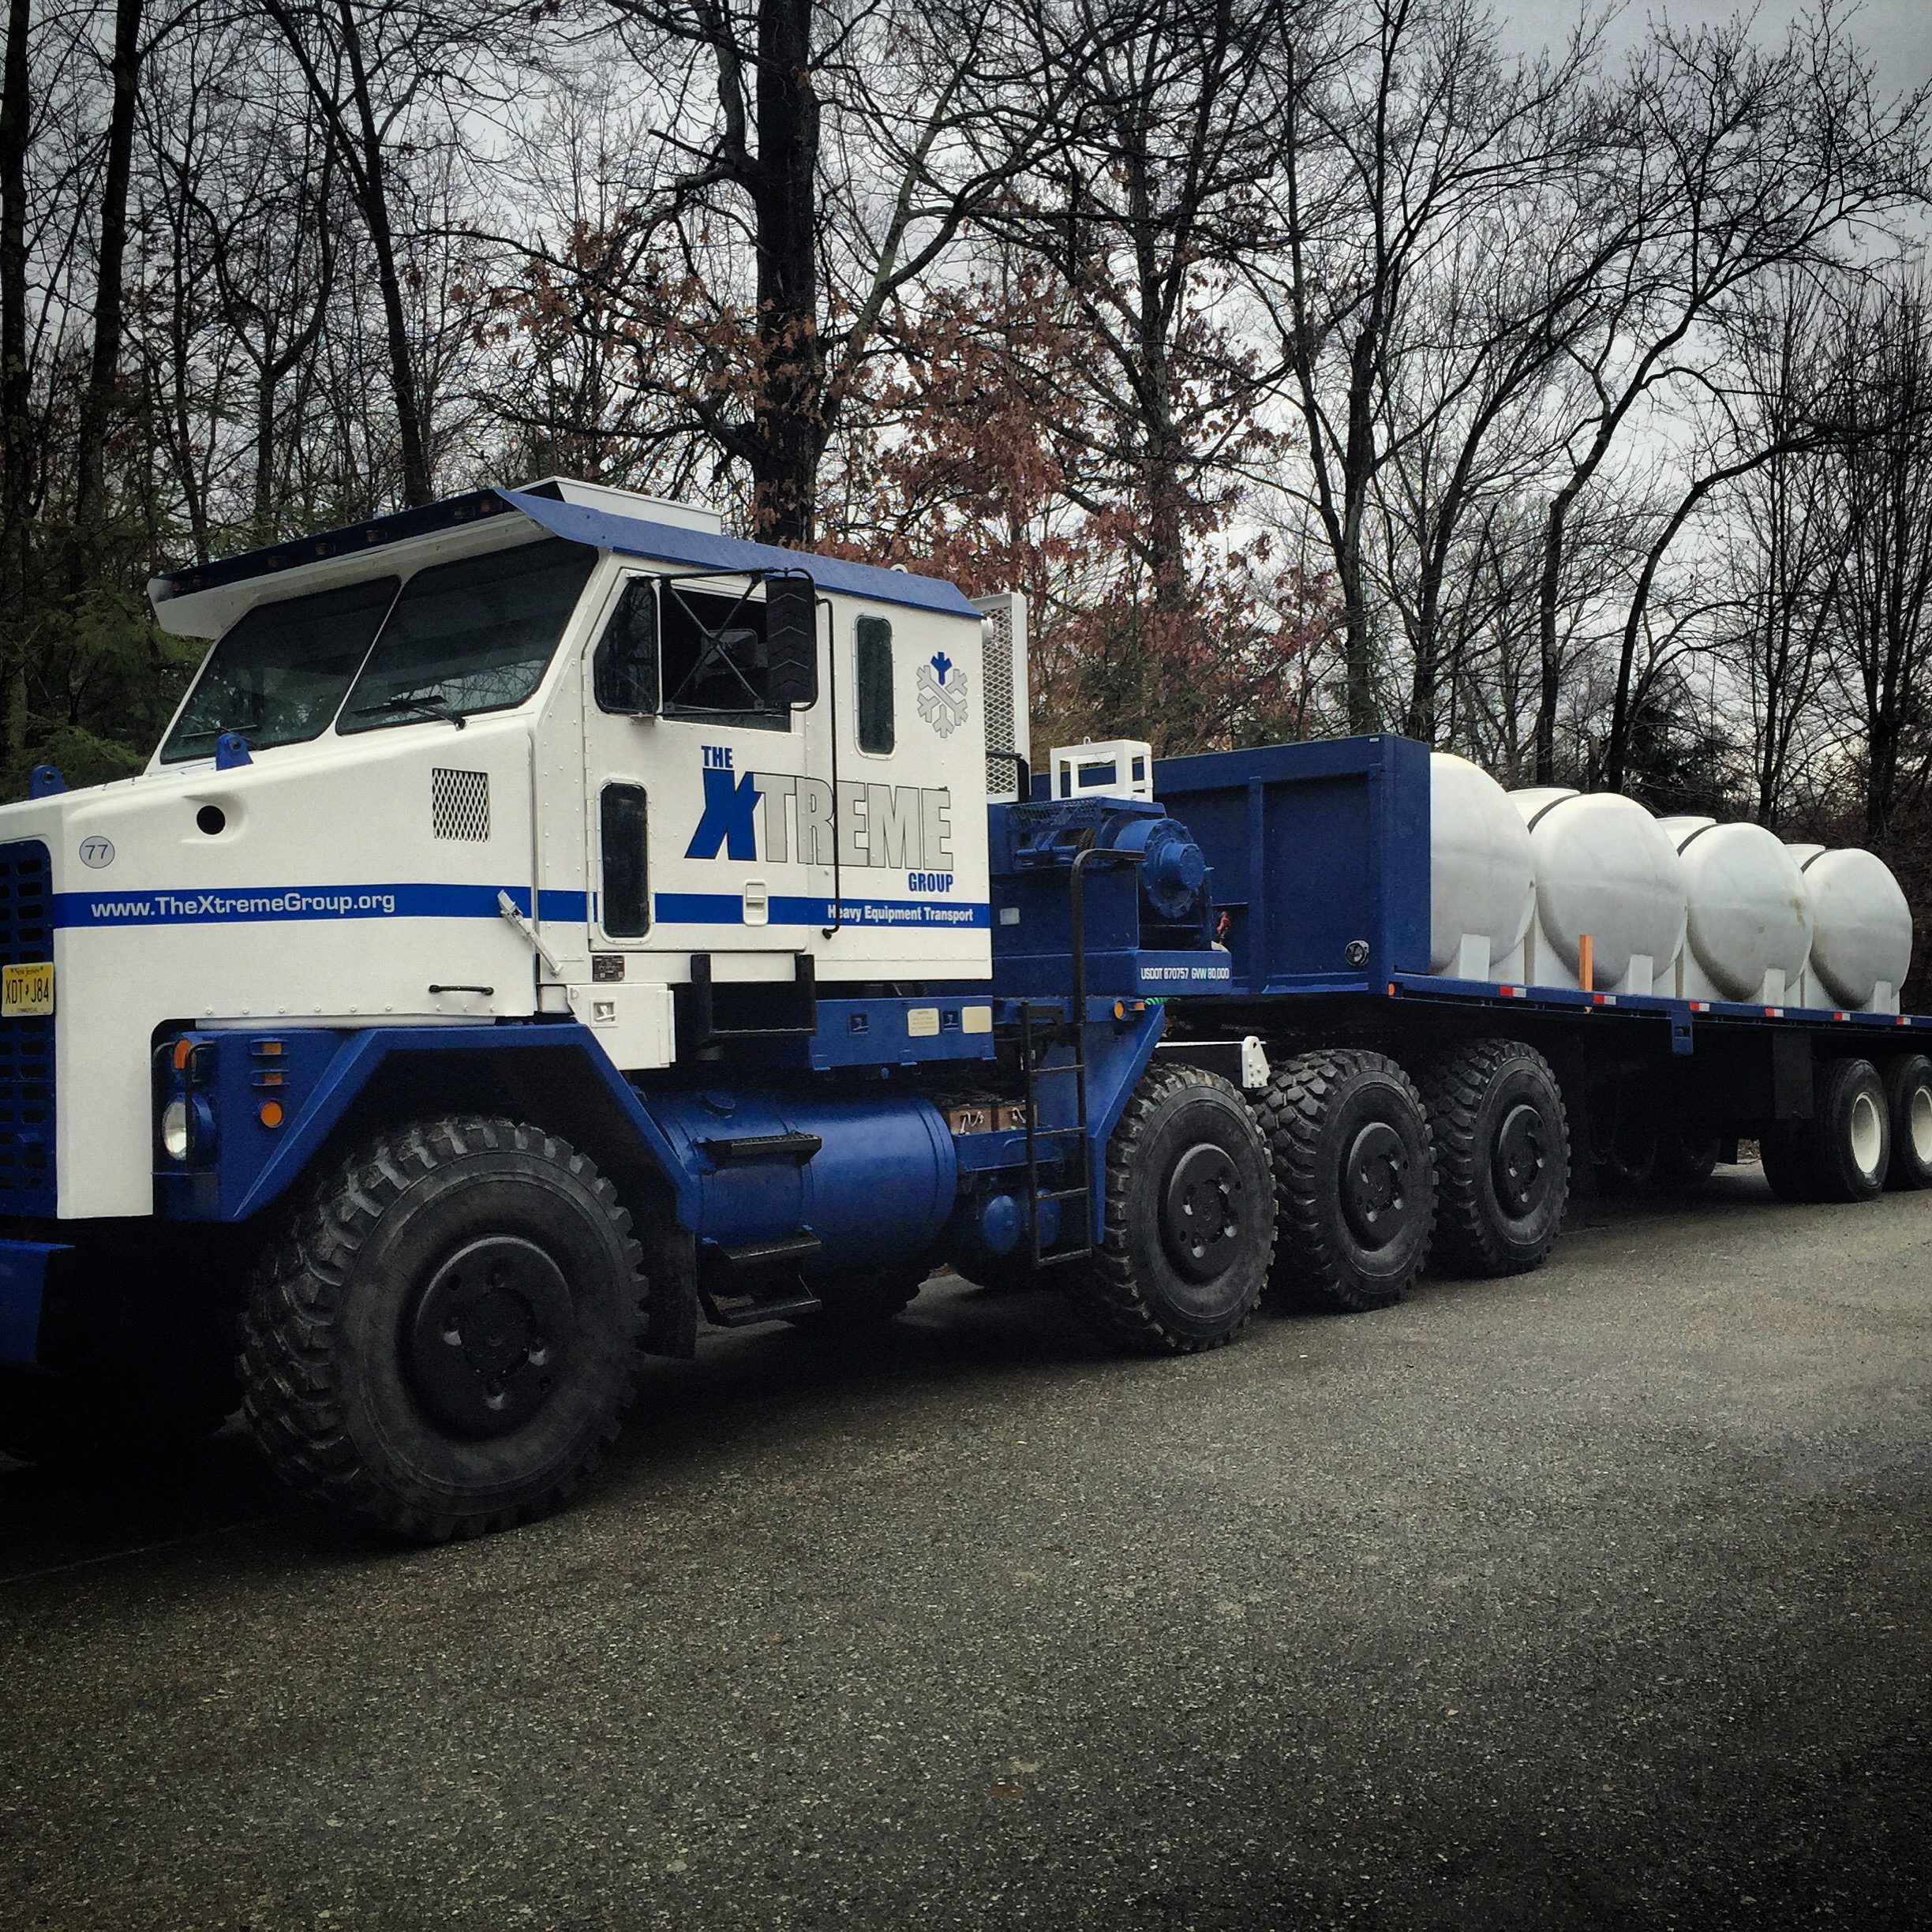 Delivery Service With Up To 5500 Gallons Per Load